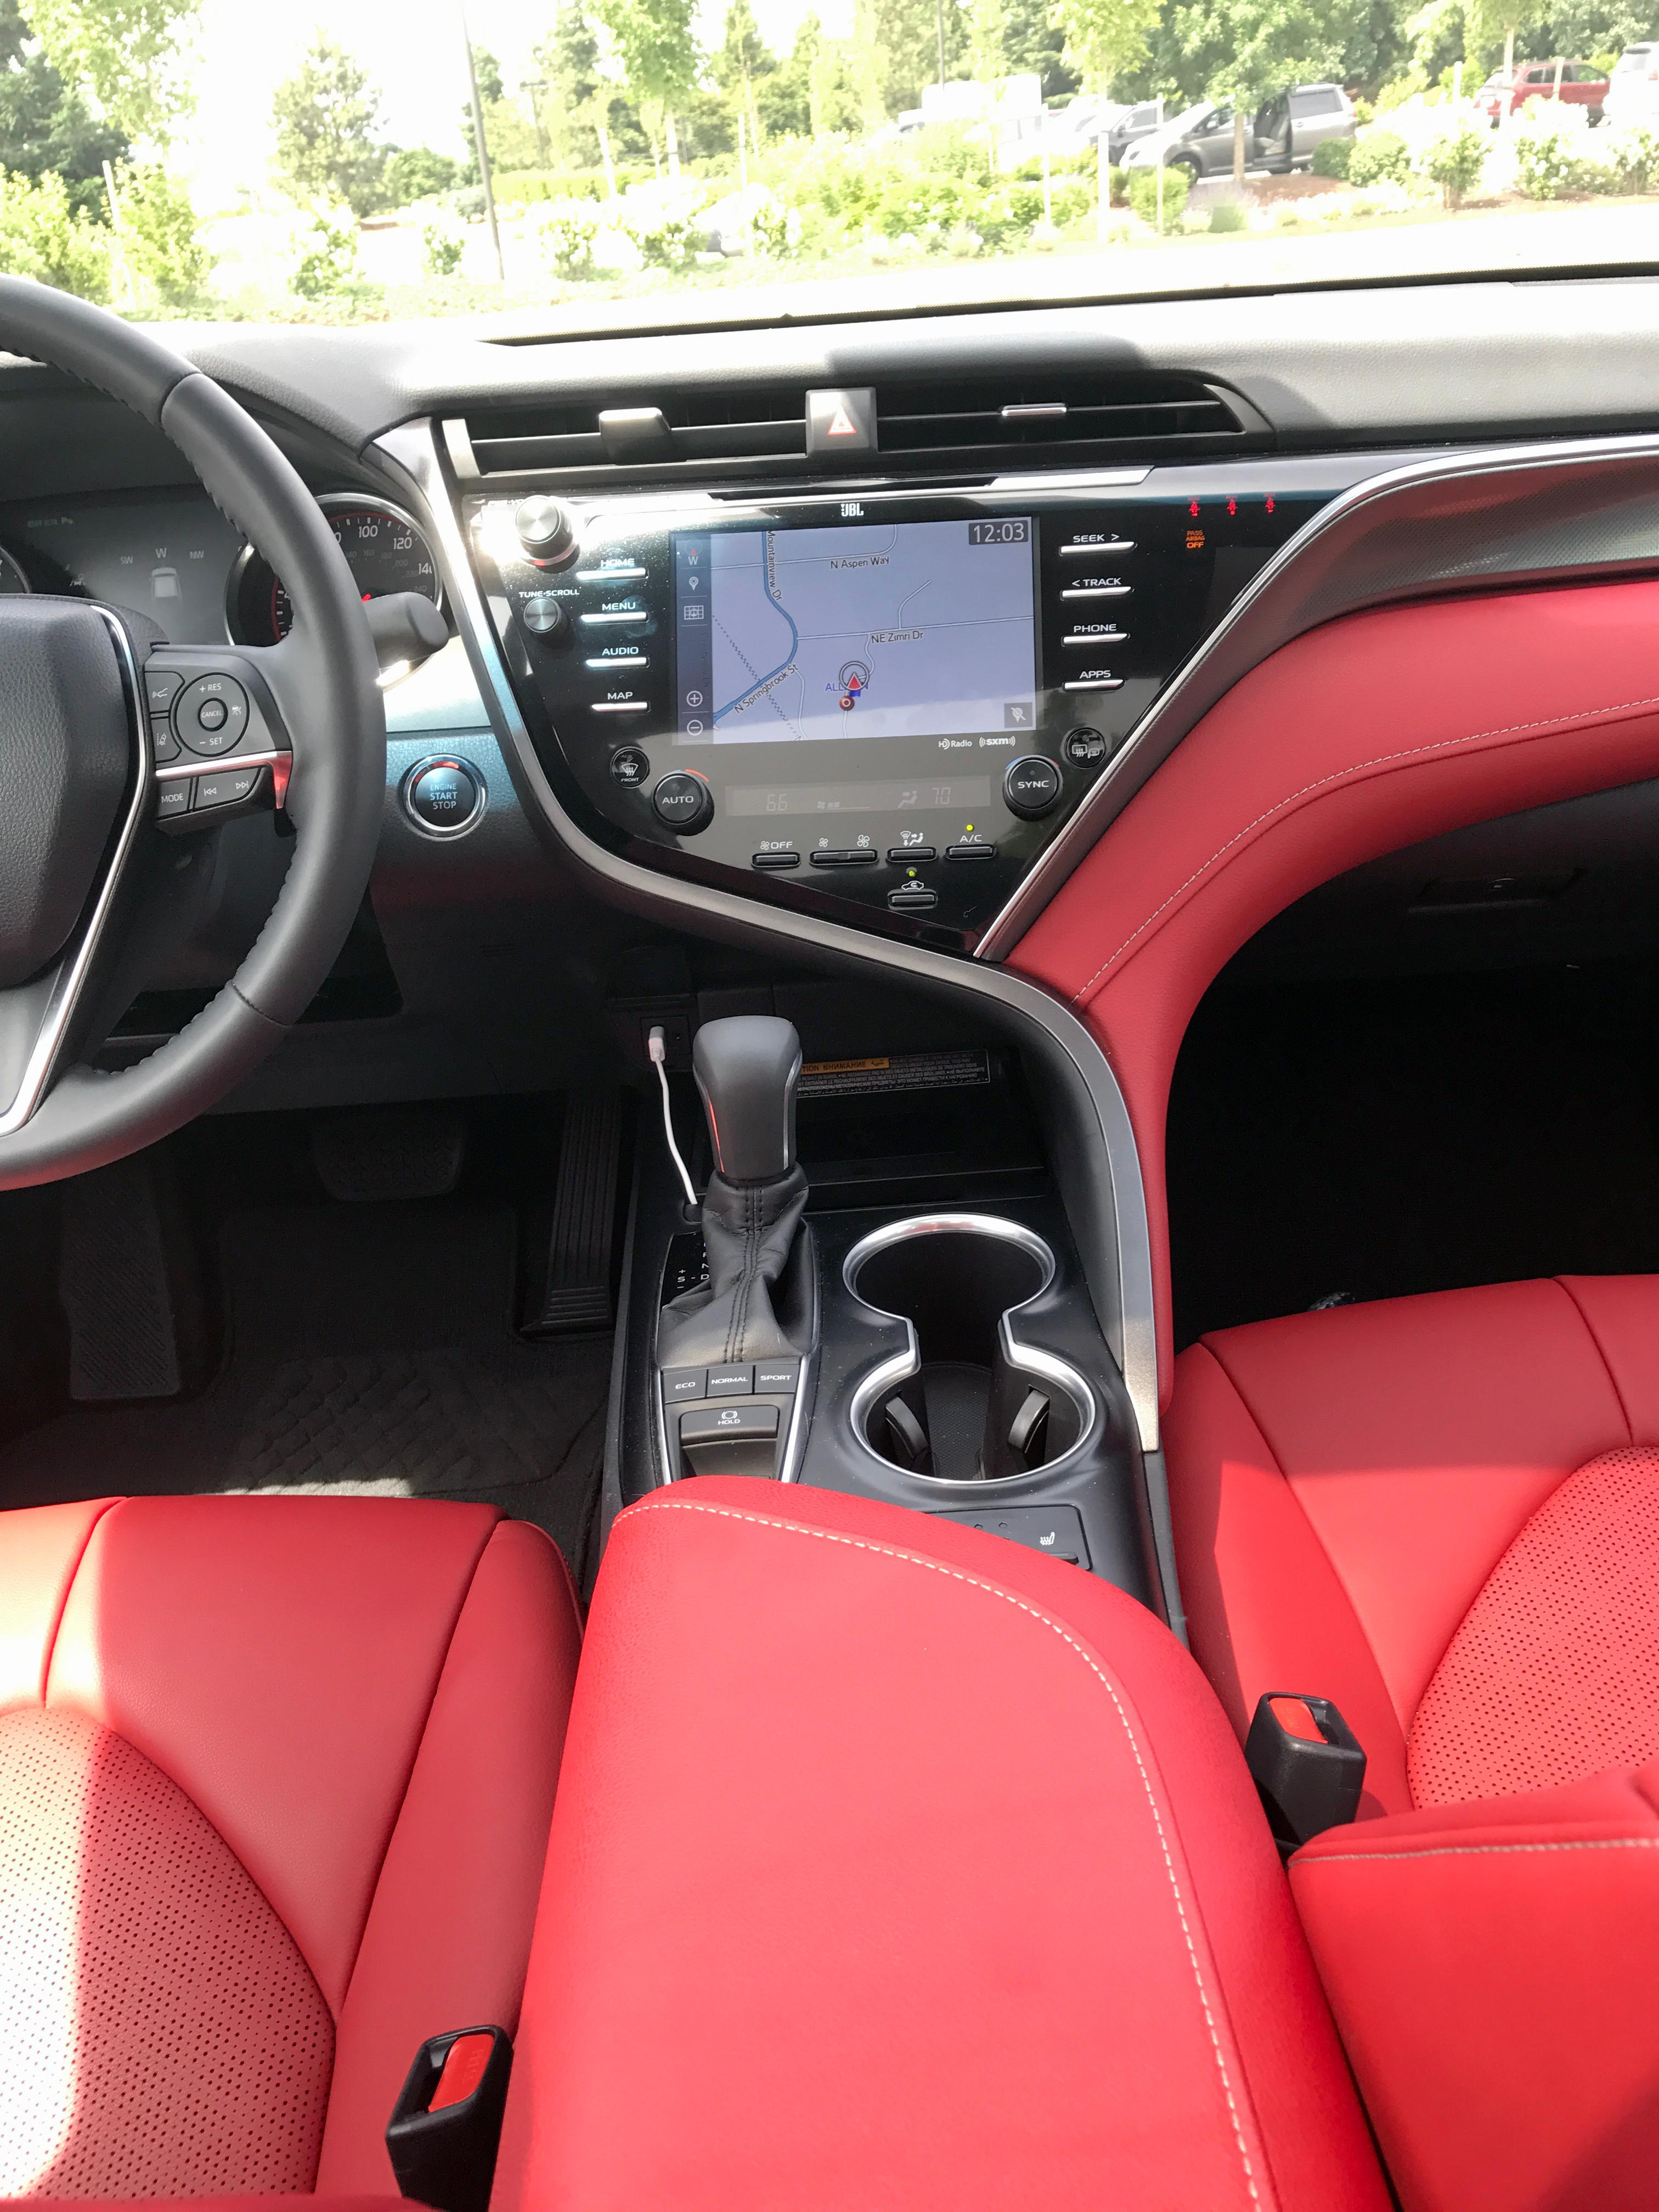 2018 toyota white camry with red interior. Fine Toyota 2018 Toyota Camry XSE Trim Interior Sinclair Broadcast Group  Jill  Ciminillo Inside Toyota White Camry With Red